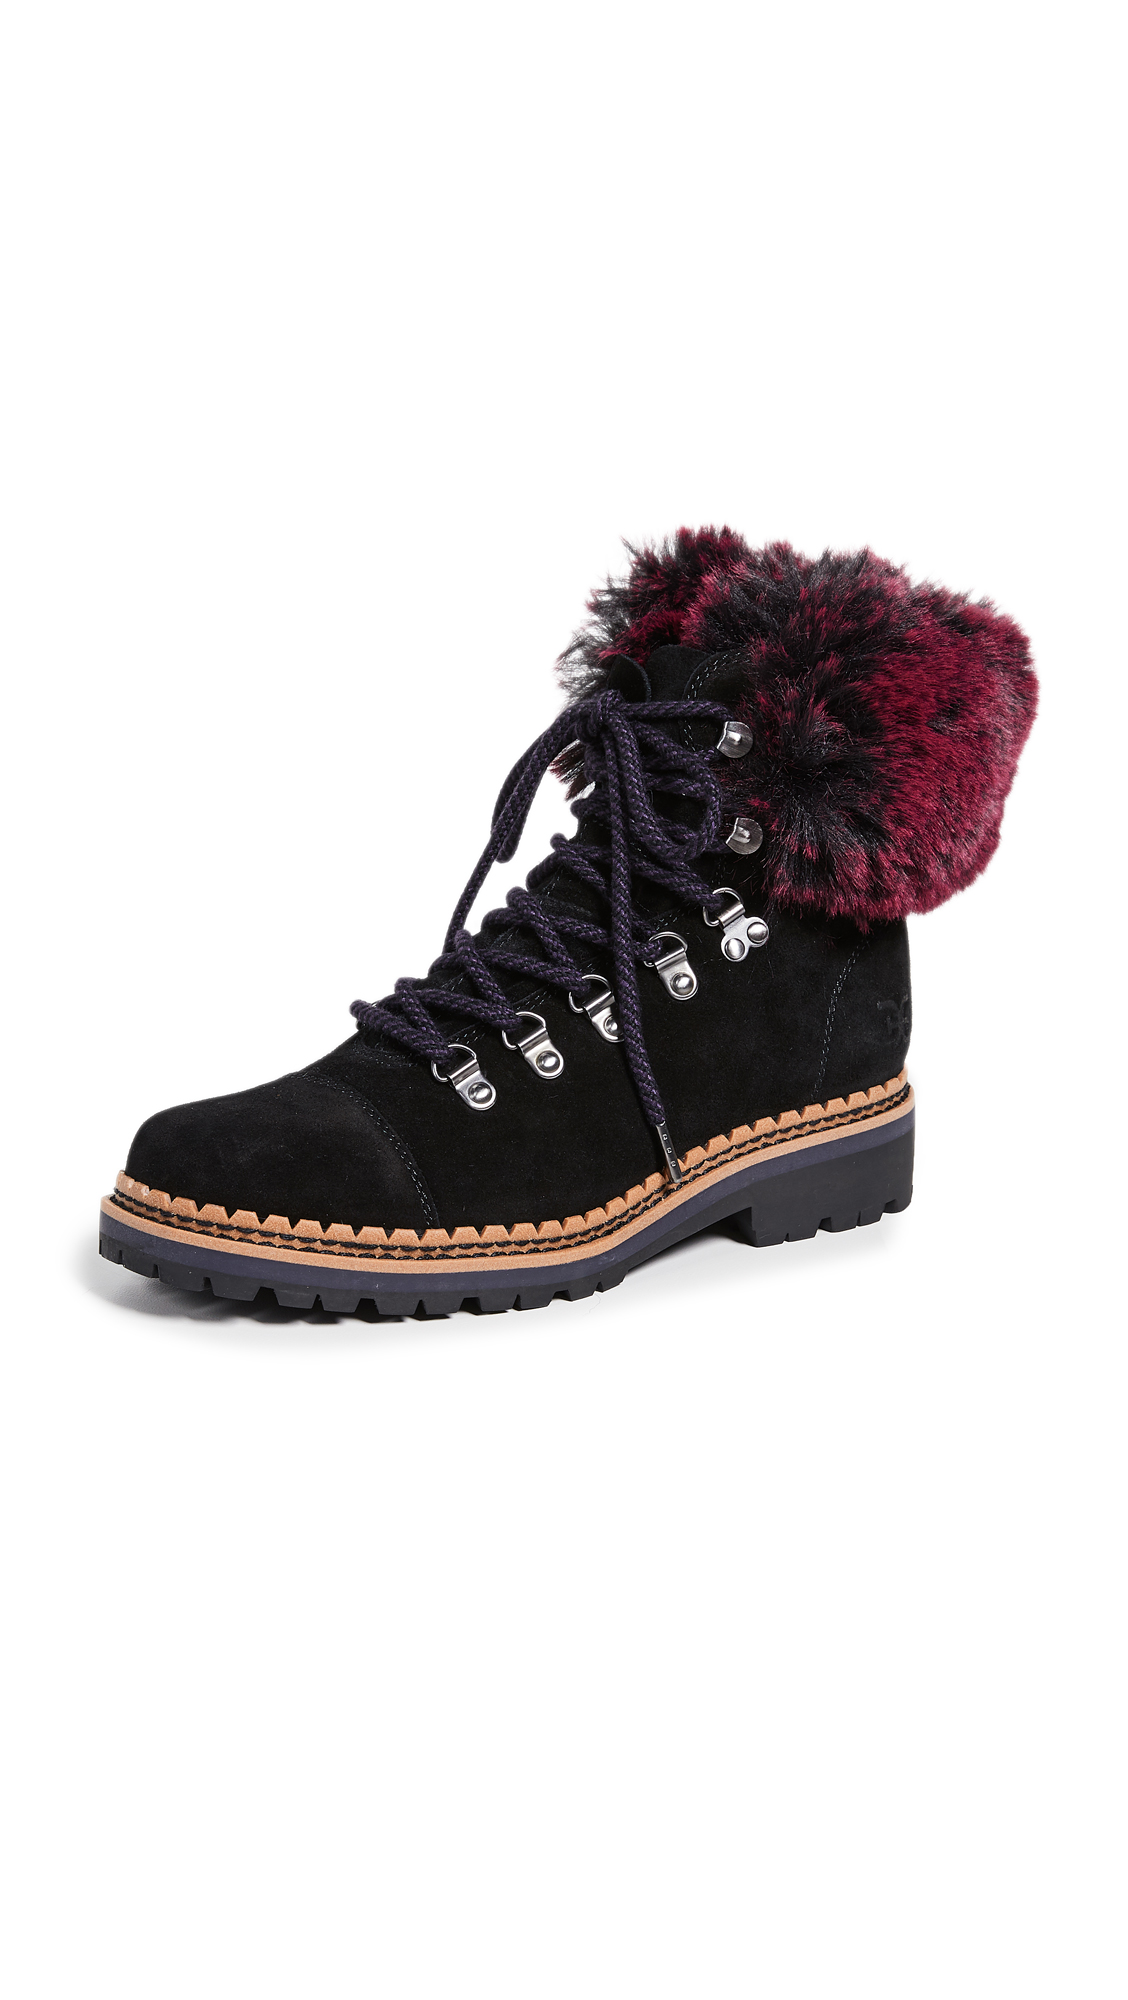 Sam Edelman Bowen Boots - Black/Raspberry Wine